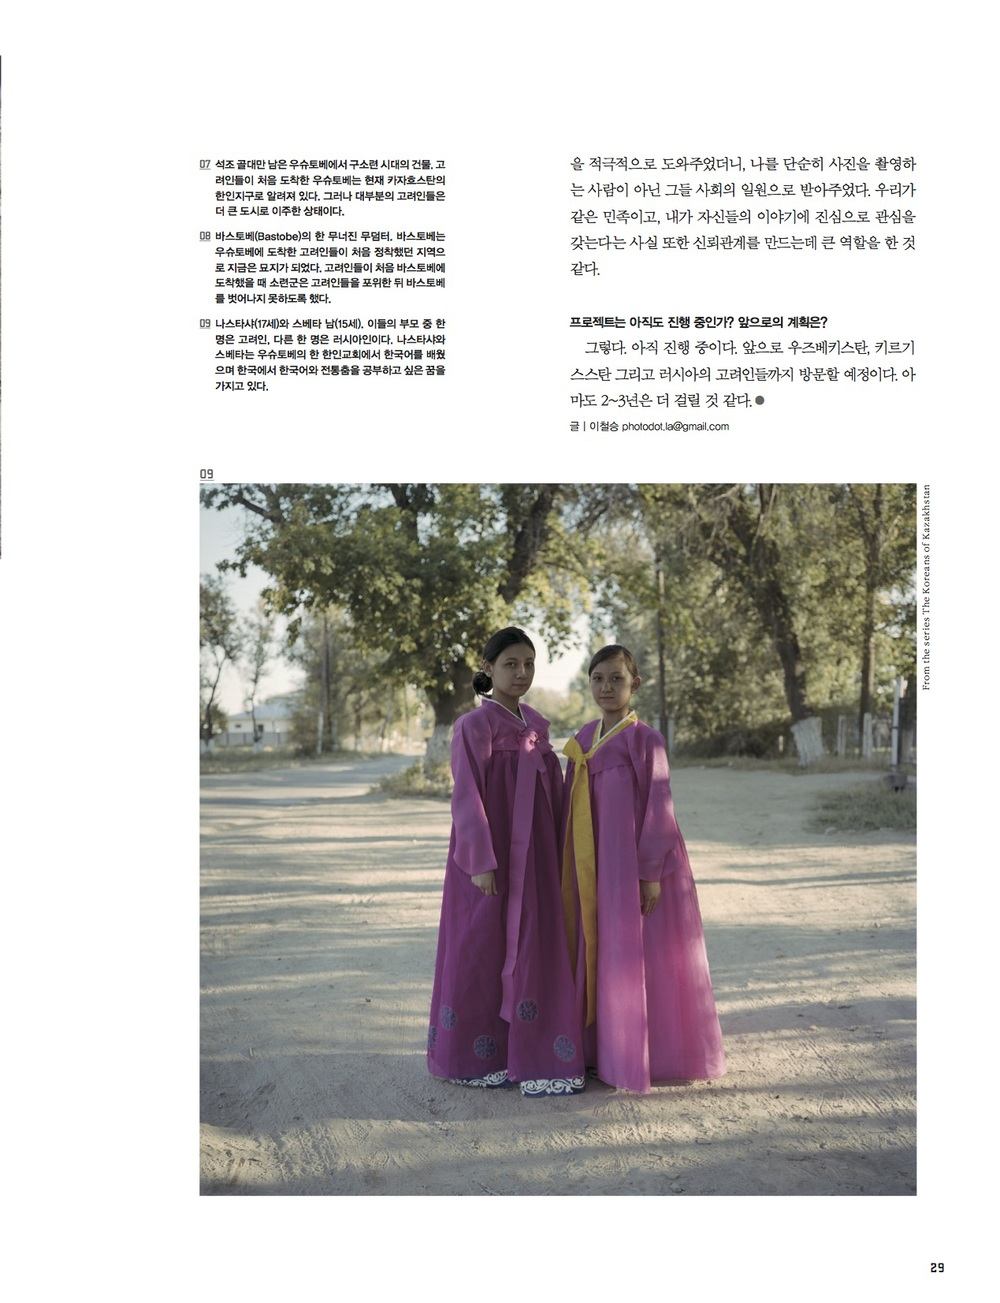 PhotoDot, 'The Koreans of Kazakhstan', August 2015